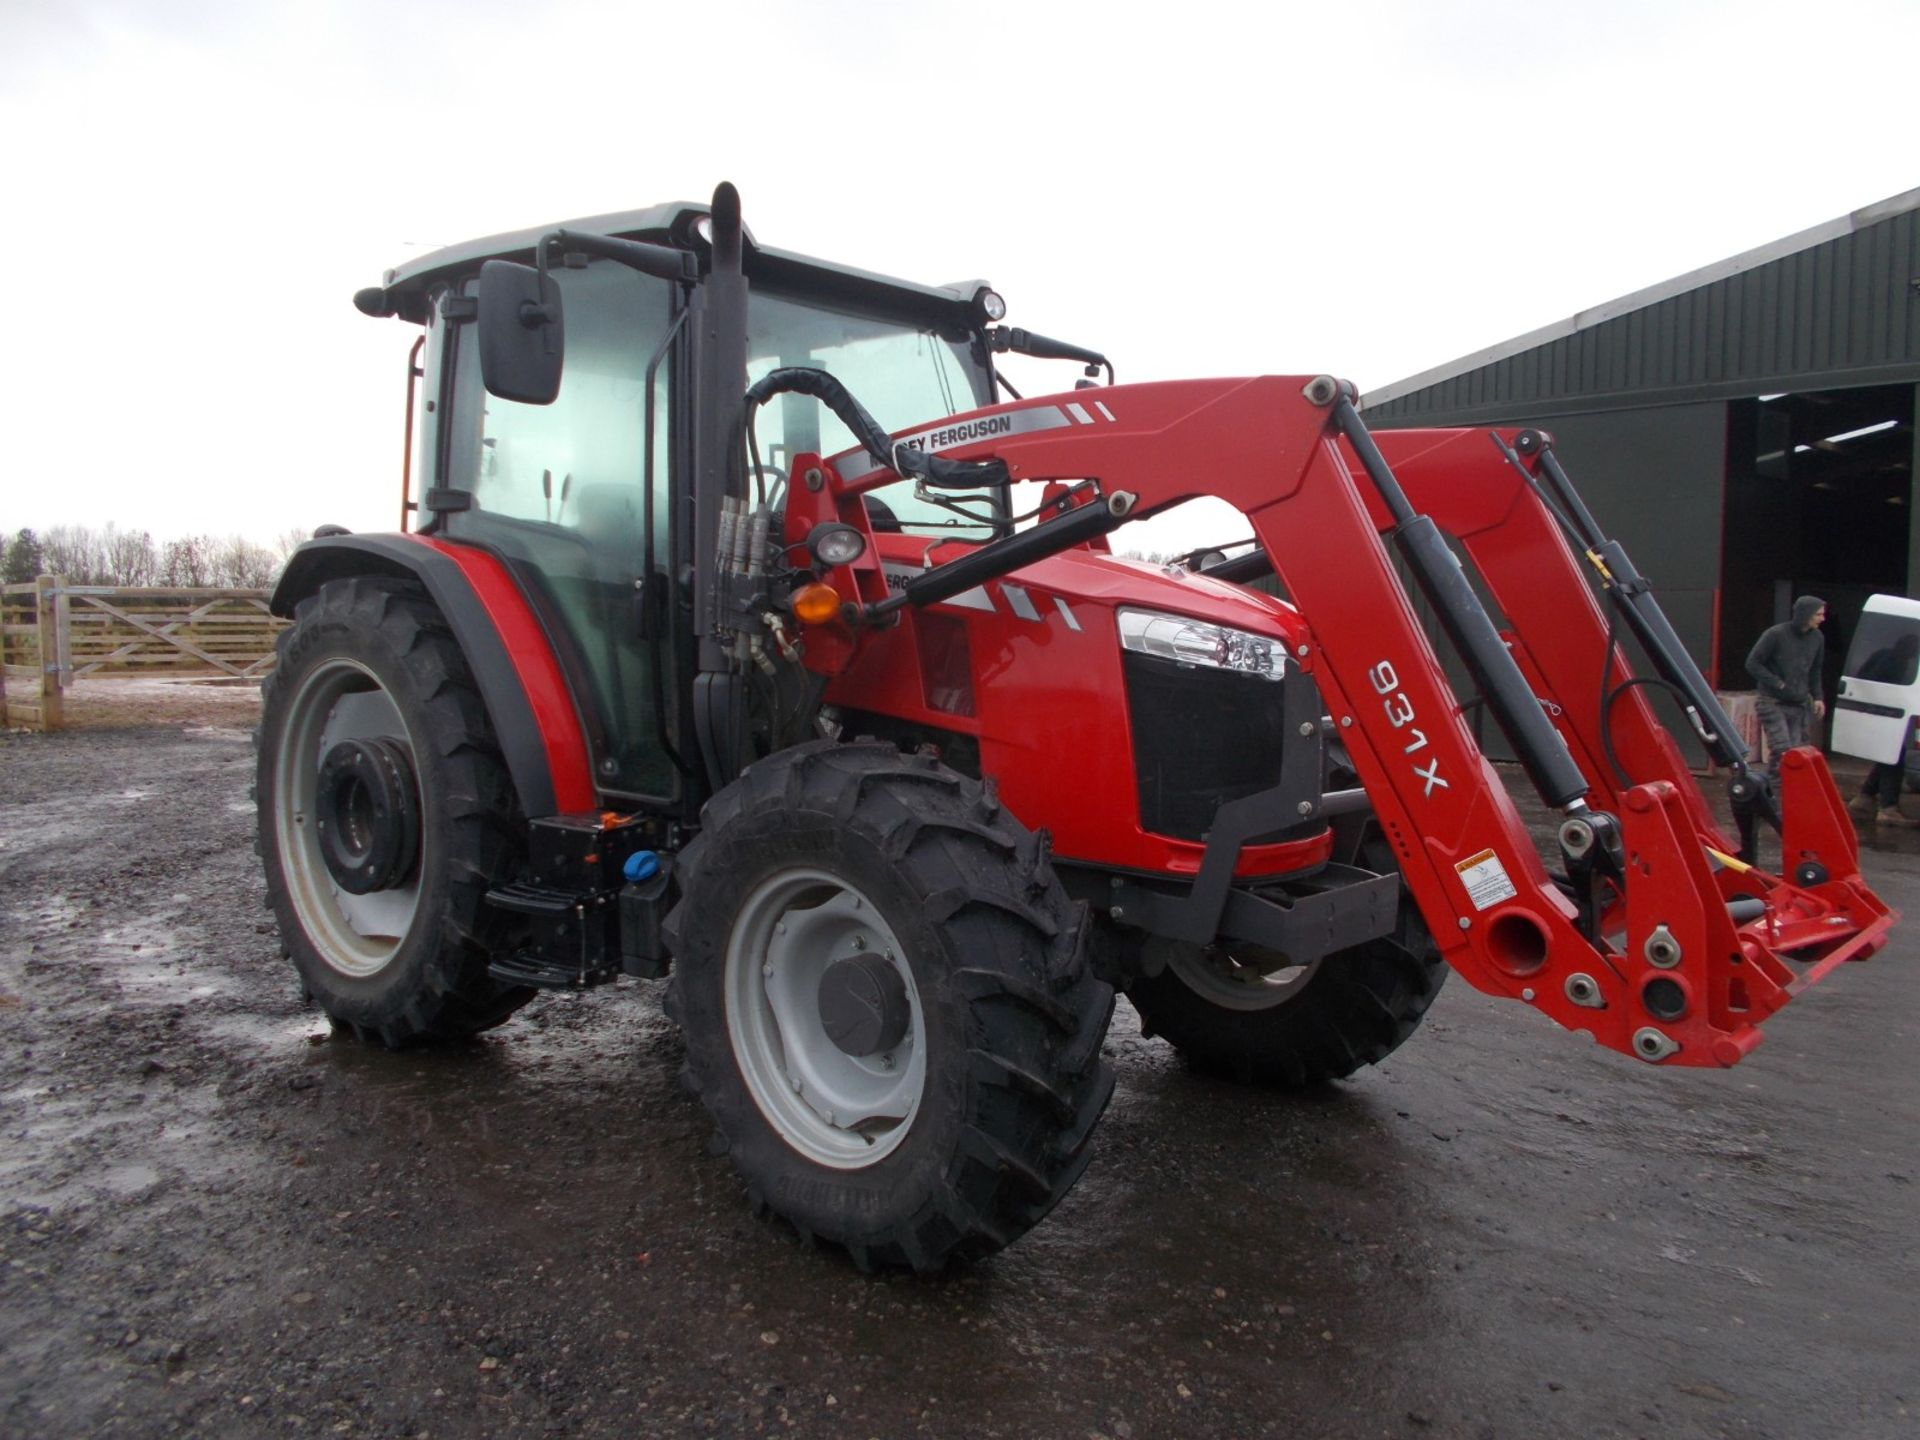 2018 MASSEY FERGUSON 4710 4WD TRACTOR WITH LOADER, AGCO 3.3 LITRE 3CYL TURBO DIESEL *PLUS VAT* - Image 2 of 21